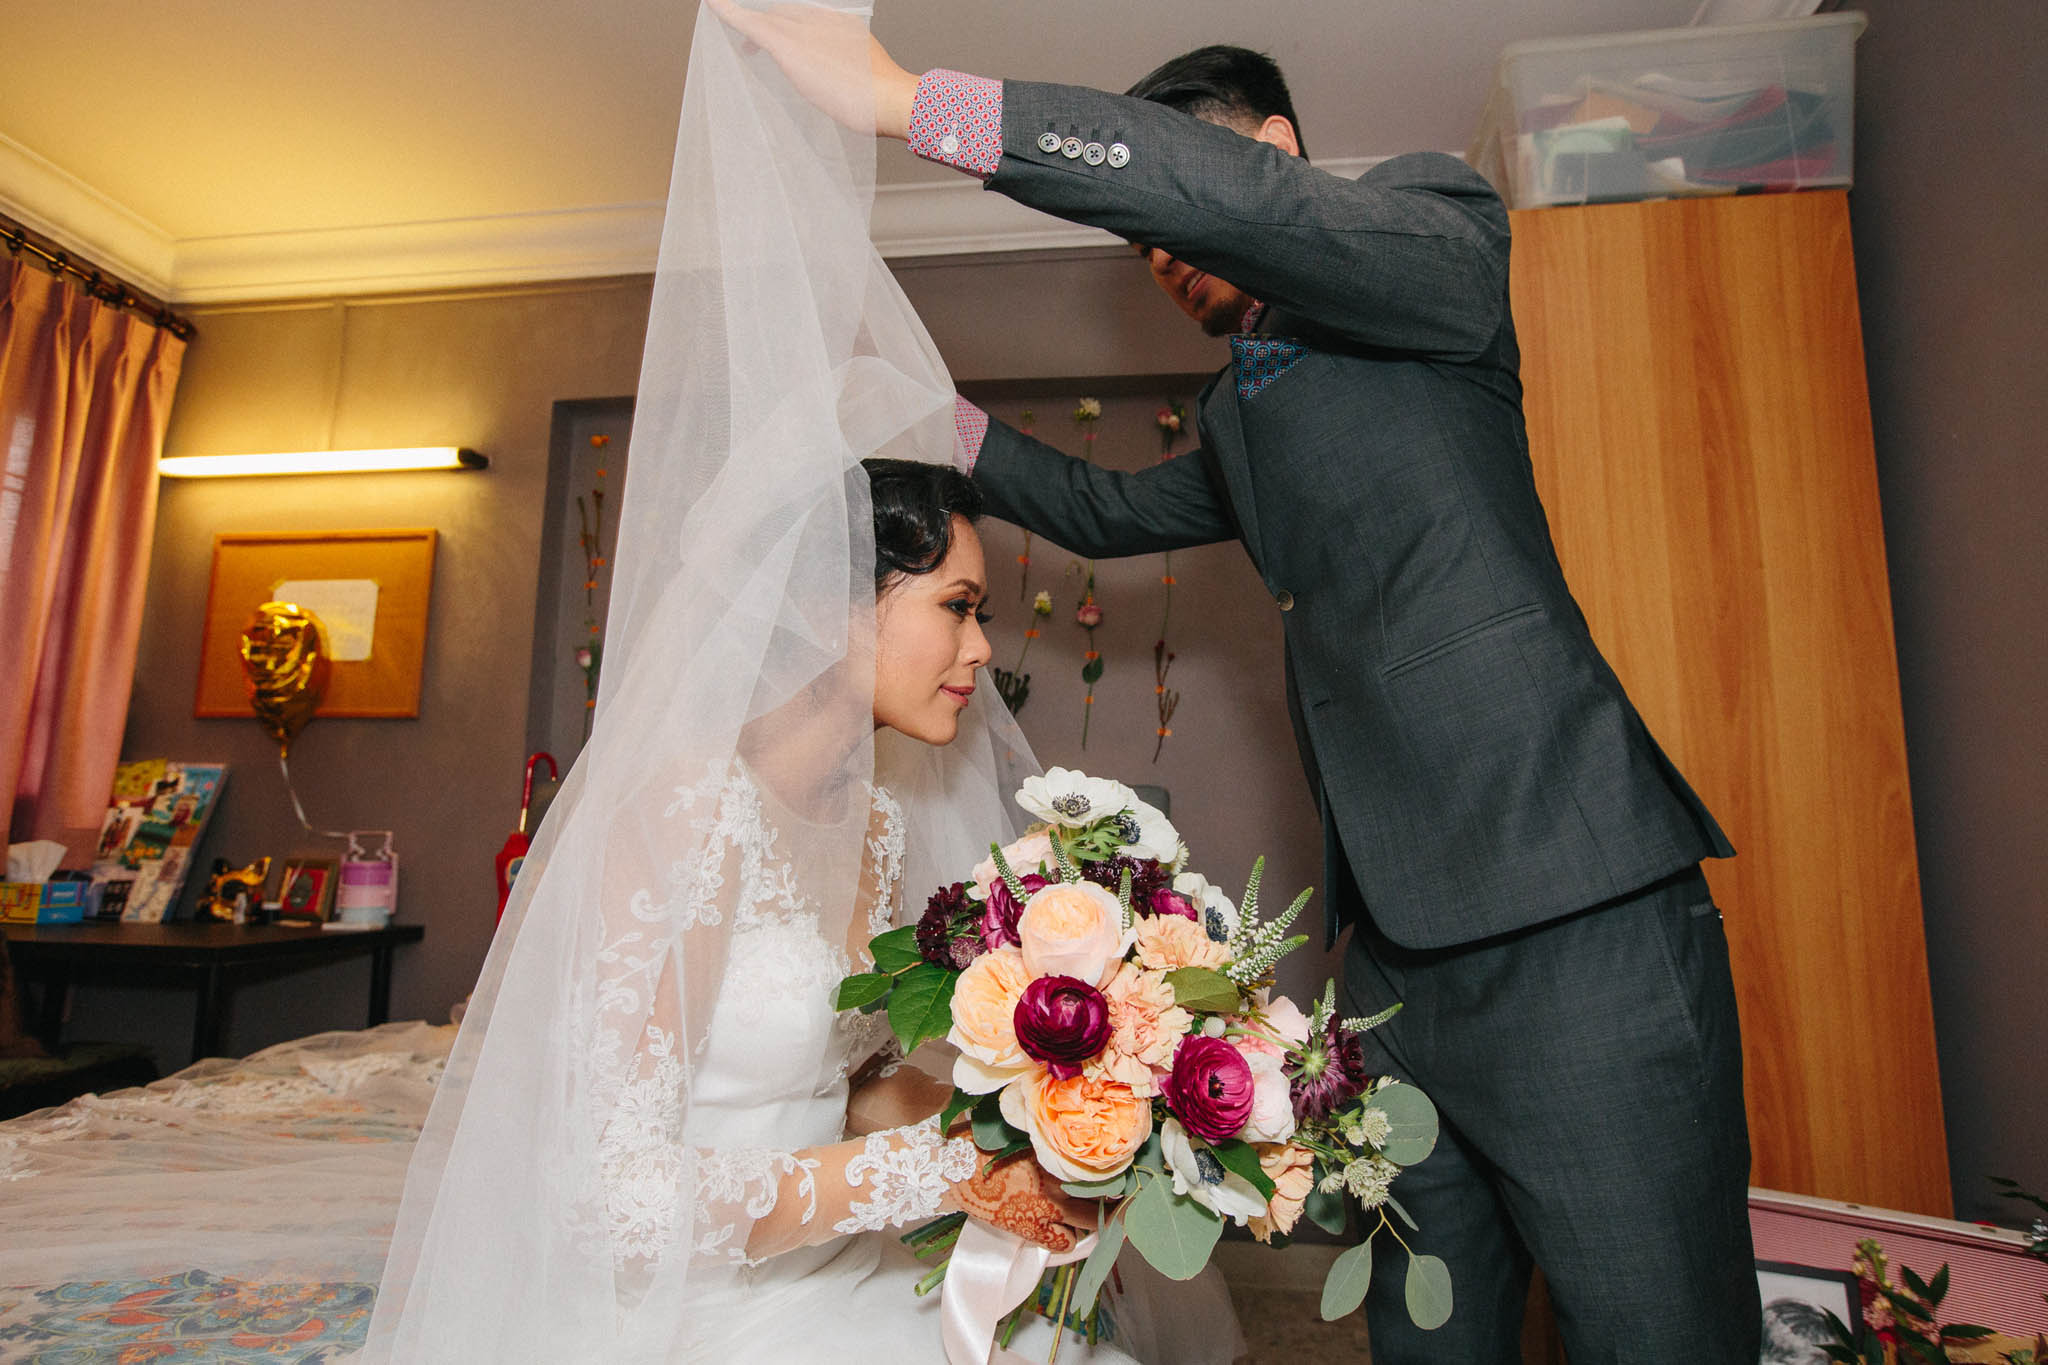 singapore-wedding-photographer-wedding-hafiana-teck-kuan-017.jpg